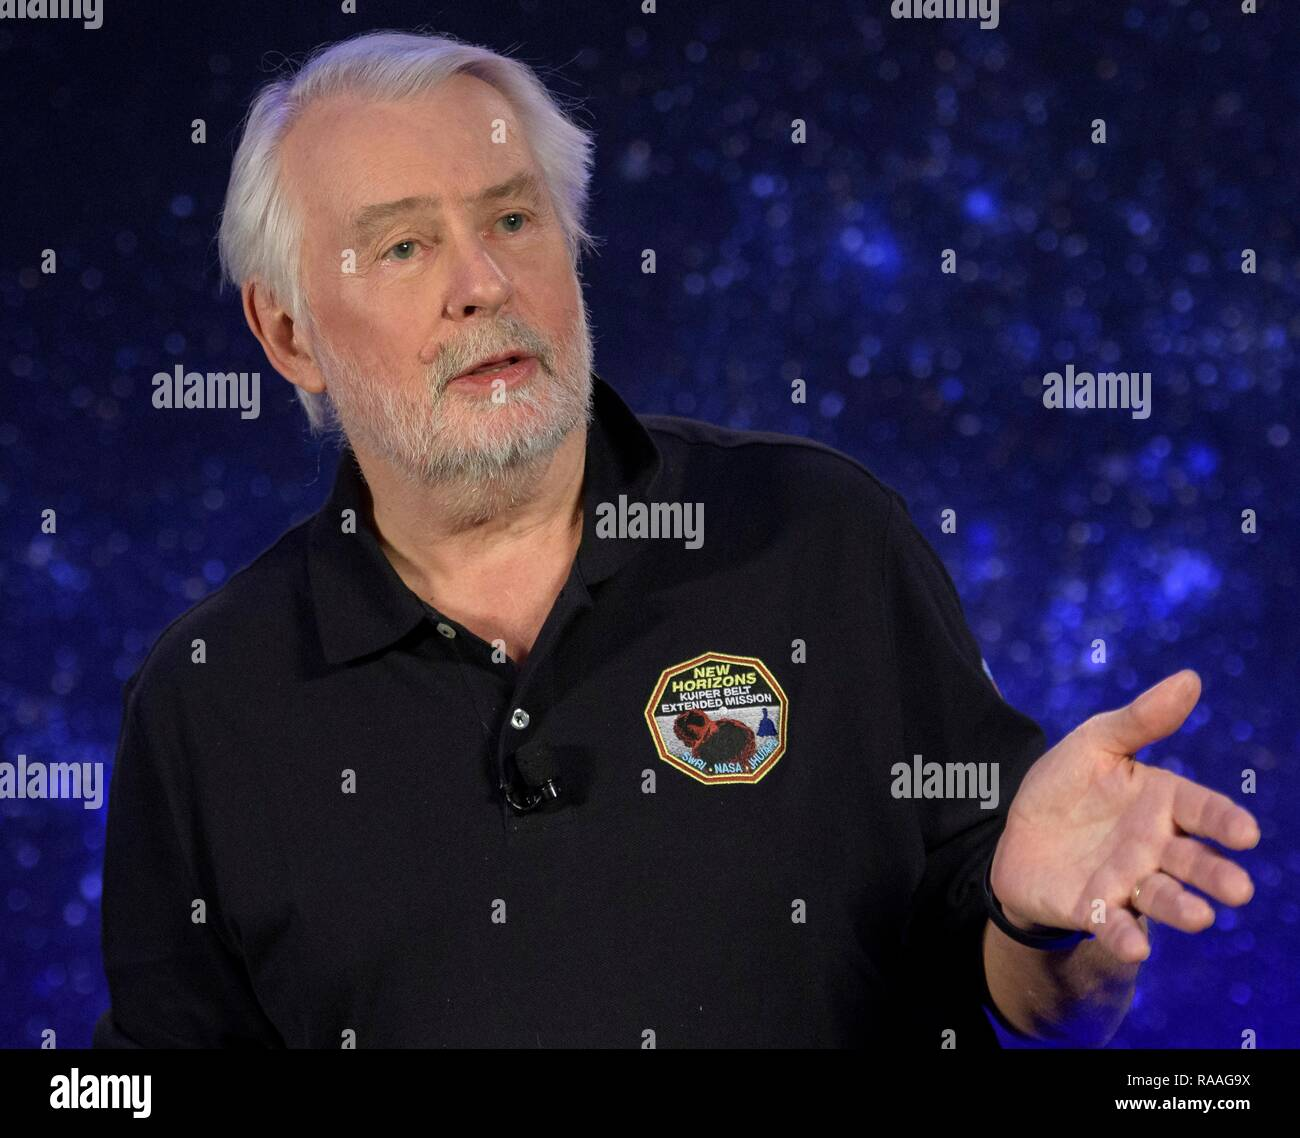 Geoff Haines-Stiles, writer, producer, director, Passport to Knowledge, discusses documenting during the press conference prior to the expected flyby of Ultima Thule by the New Horizon spacecraft at Johns Hopkins University Applied Physics Laboratory December 31, 2018 in Laurel, Maryland. The flyby by the space probe occurred 6.5bn km (4bn miles) away, making it the most distant ever exploration of an object in our Solar System. - Stock Image